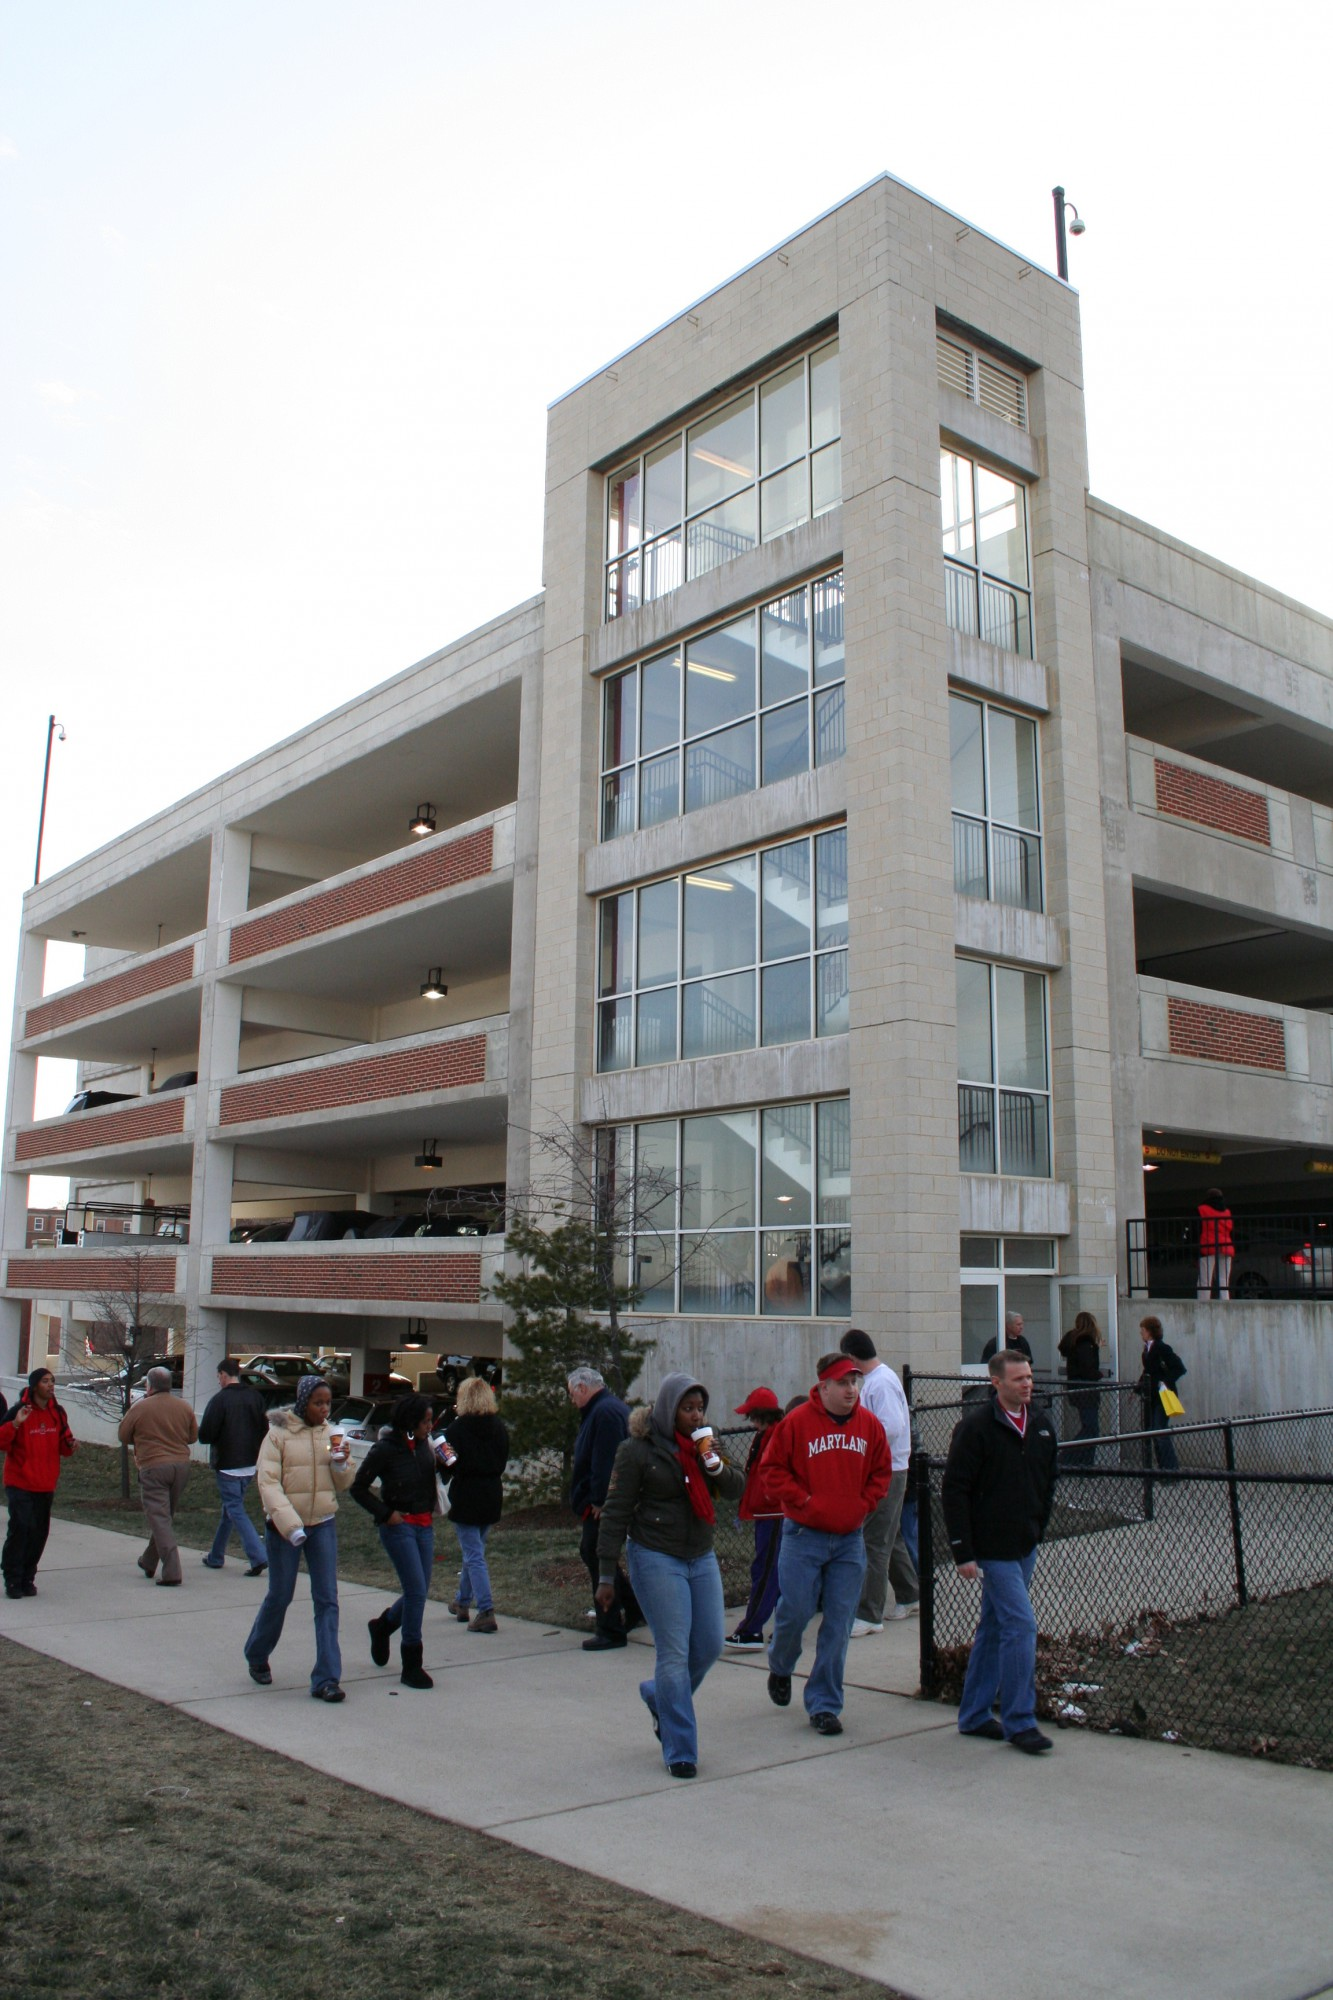 3 Car Garage Square Footage >> University of Maryland, College Park - Comcast Center Parking Garage · Portfolio · Design Collective